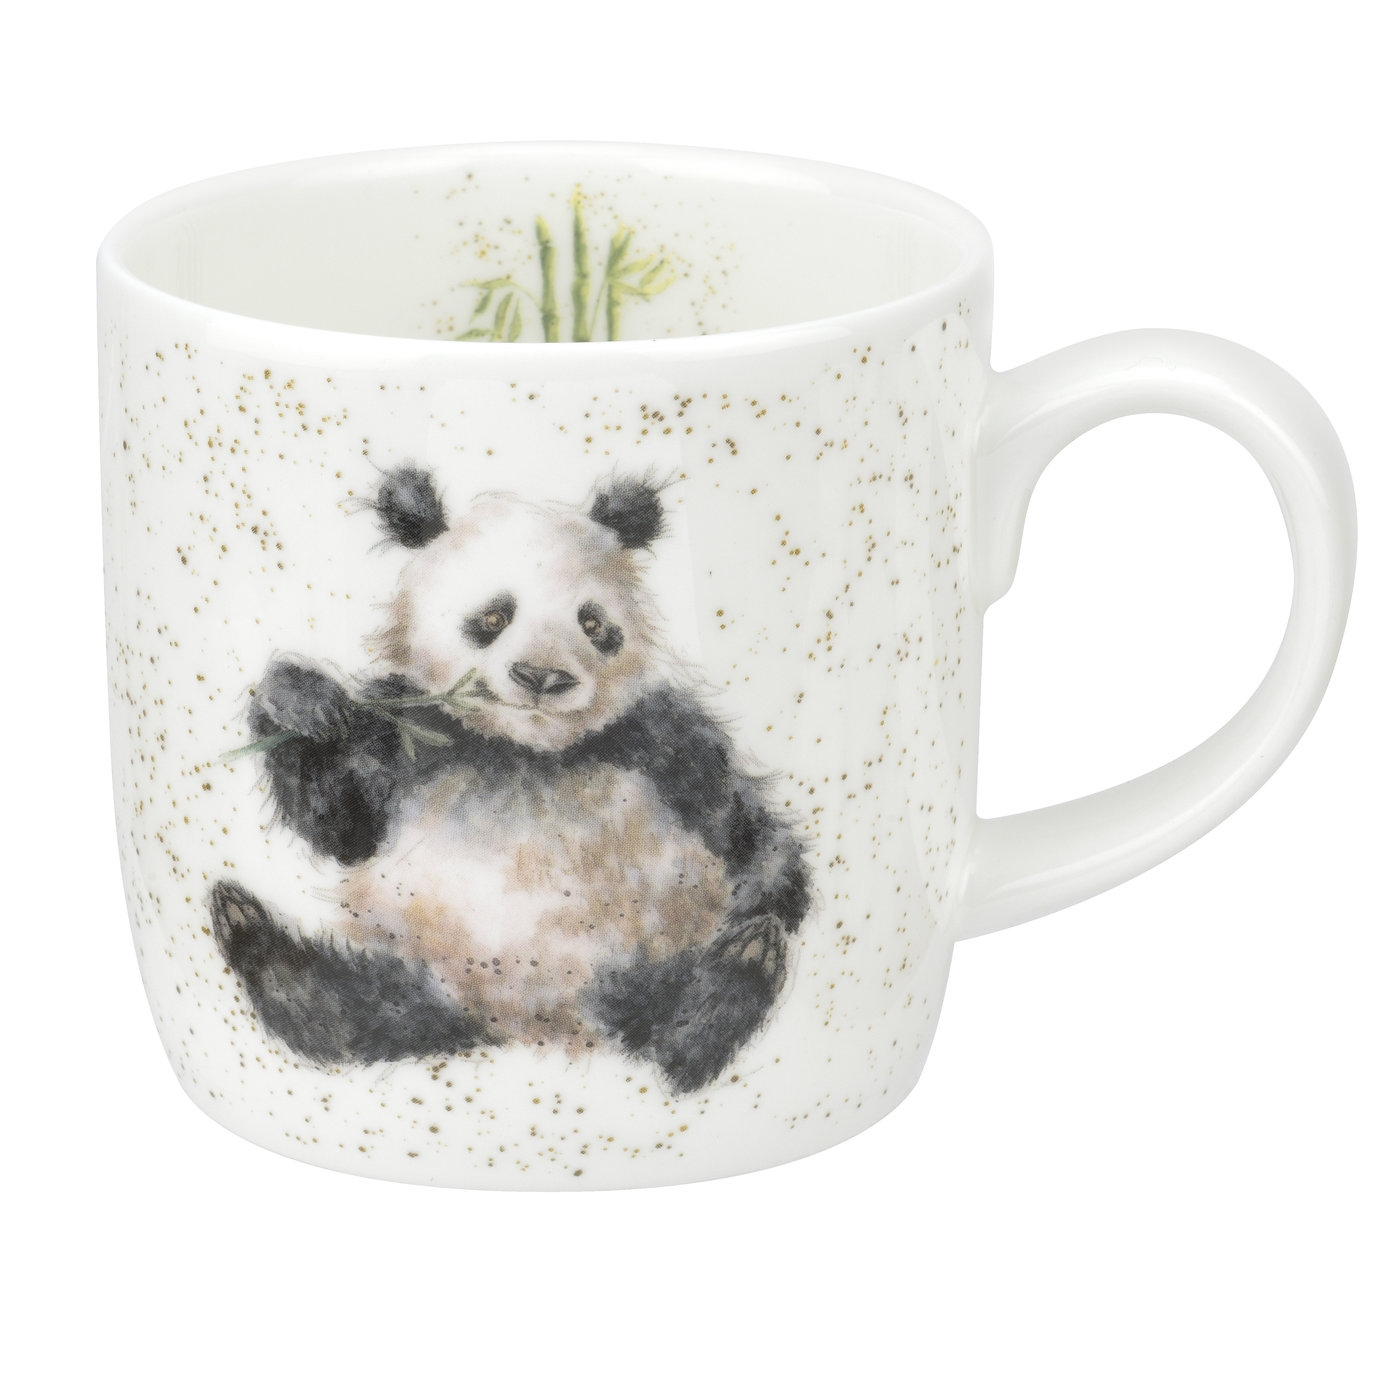 Royal Worcester Wrendale Designs MUG 14 OZ BAMBOOZLED (PANDA) image number 0